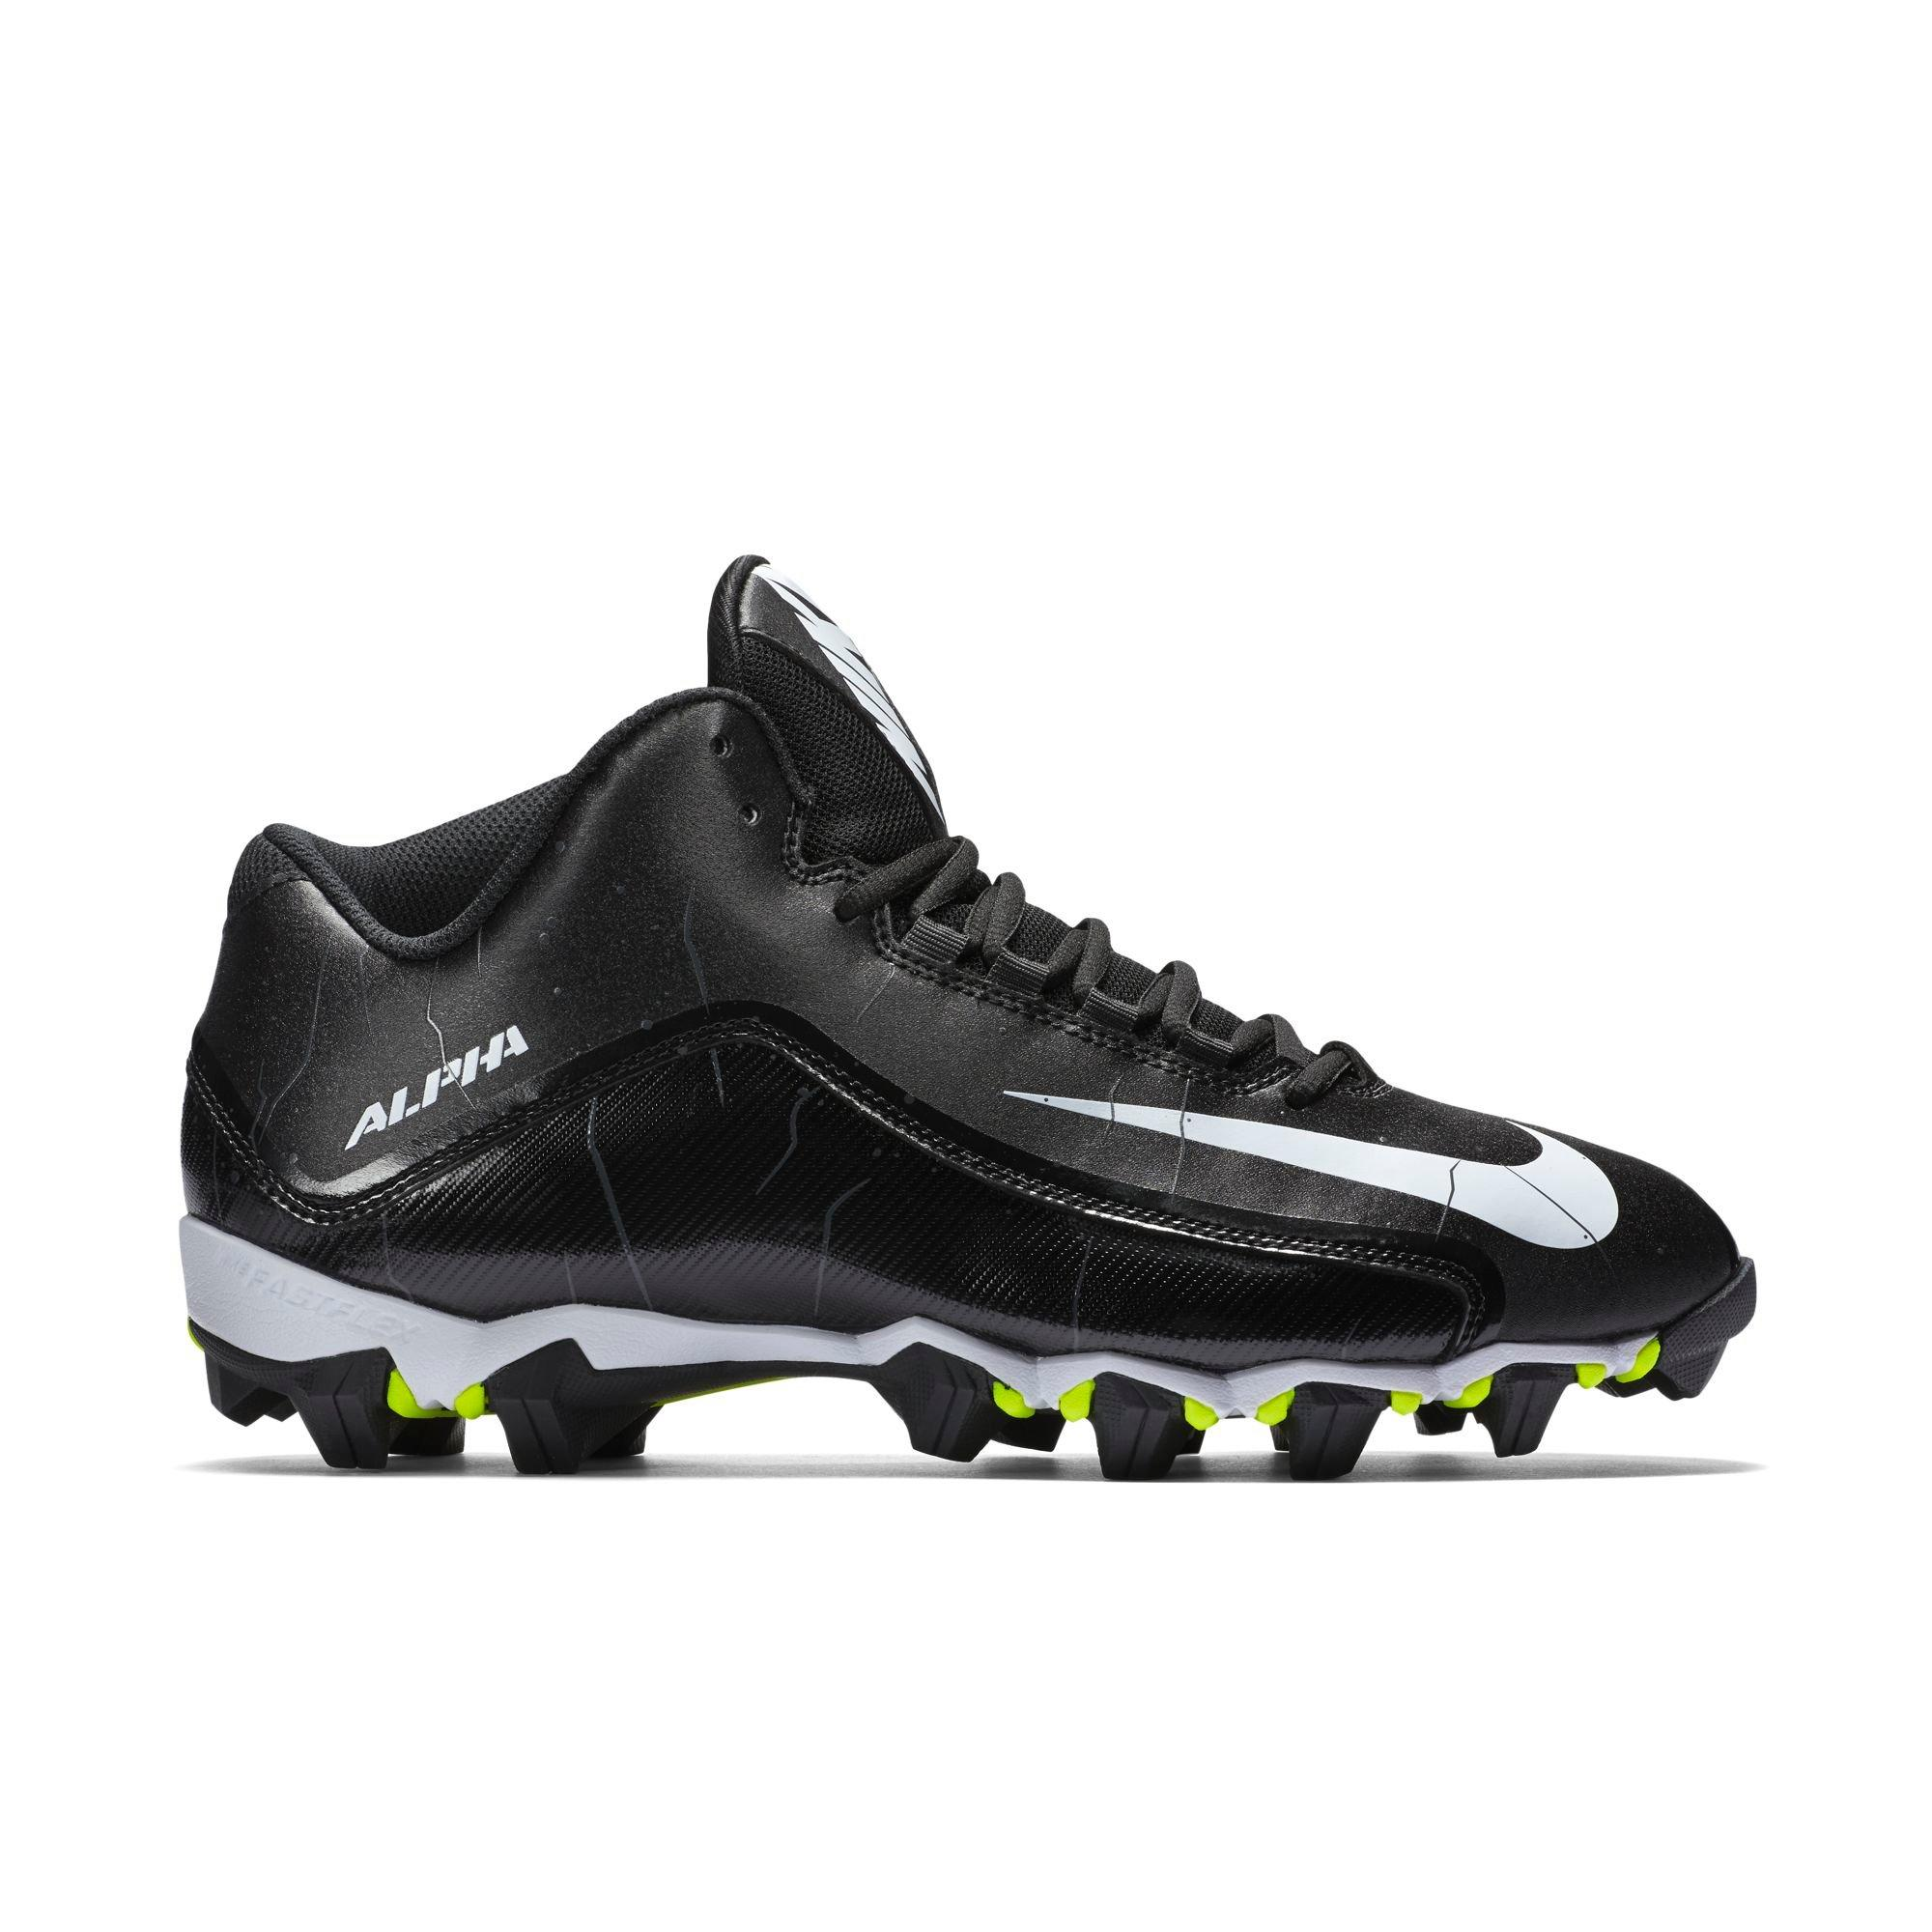 9ff2a1f1f98c nike rival lebron shoes for men